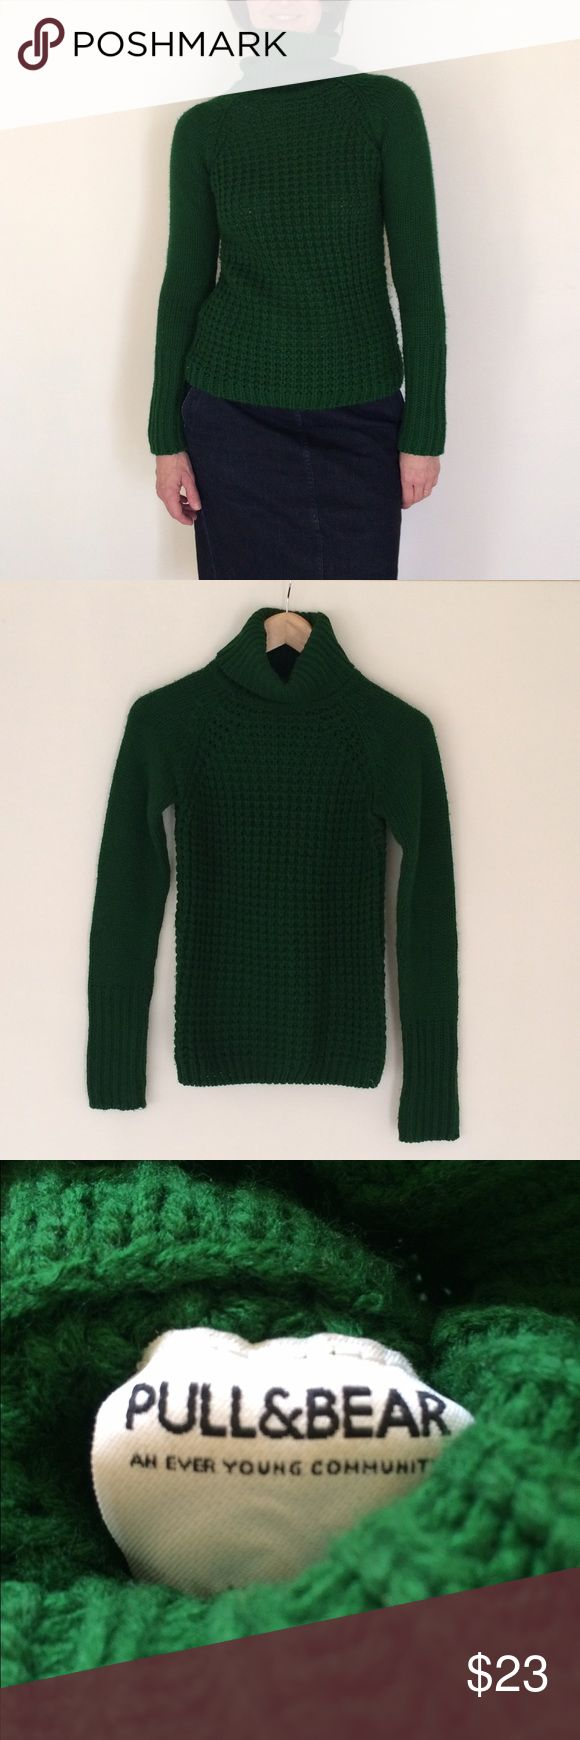 Pull and Bear Green Turtleneck Sweater, XS Pull and Bear emerald green turtleneck sweater in a size XS. Pull and Bear is a Zara company. Excellent condition. Only worn a few times. Pull&Bear Sweaters Cowl & Turtlenecks